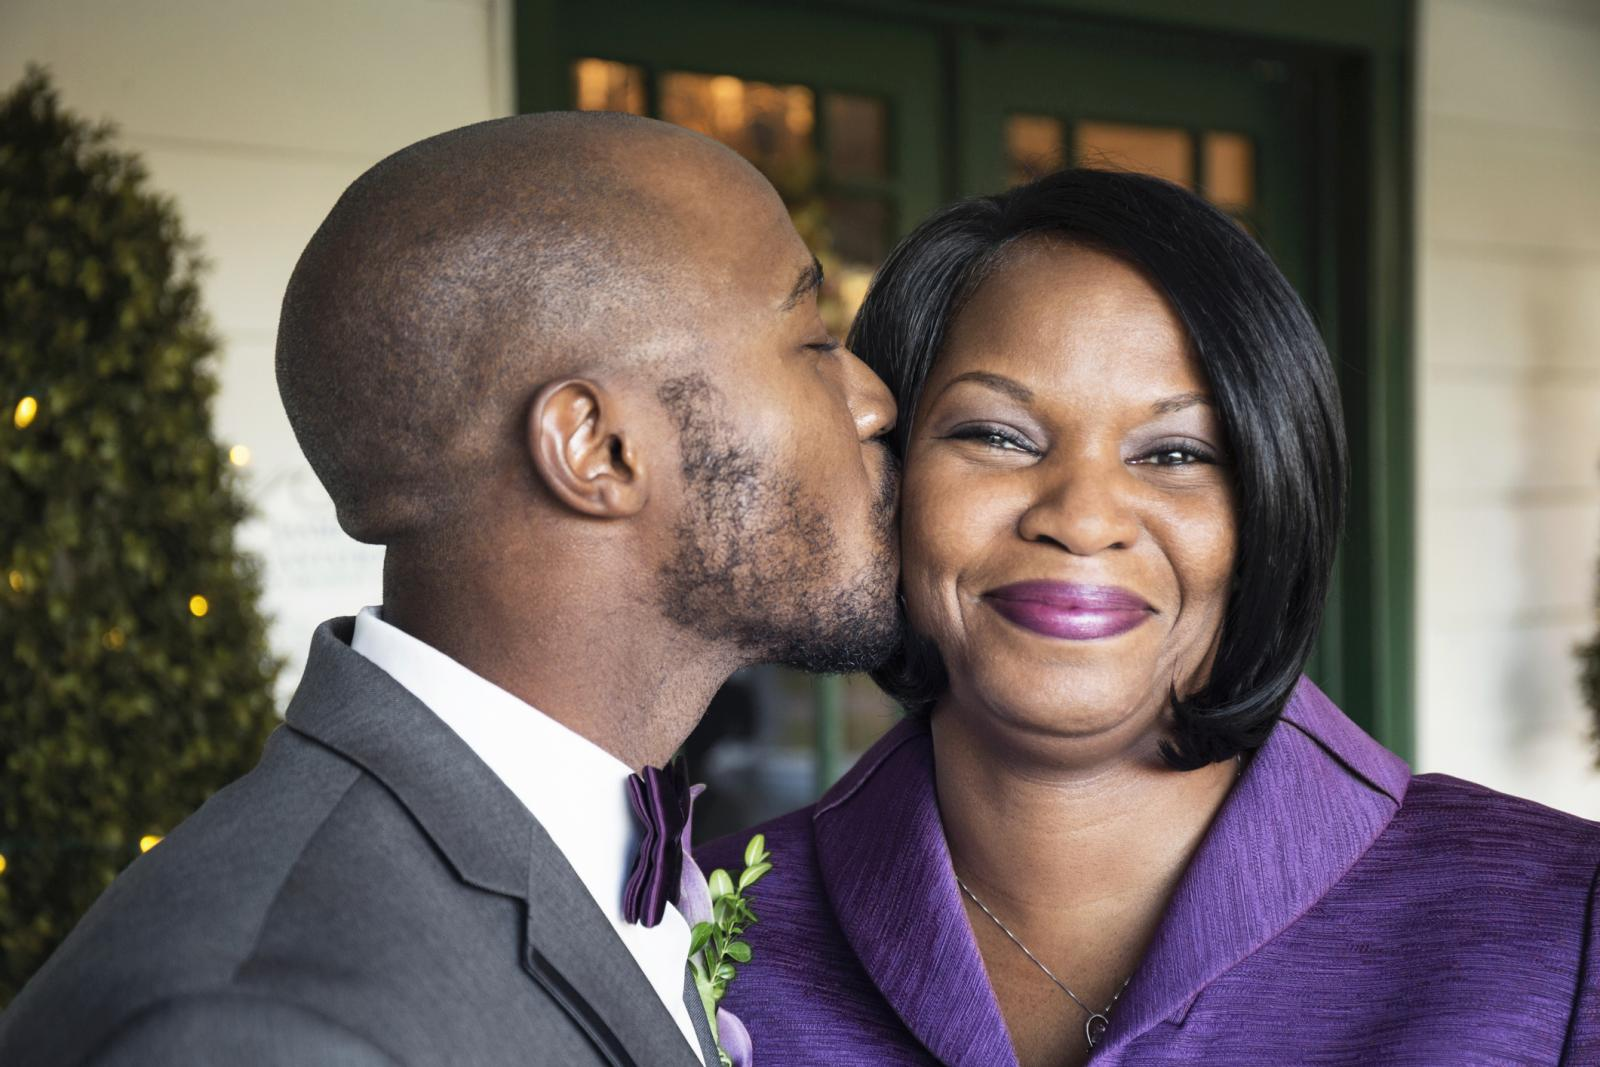 Groom kissing mother at wedding